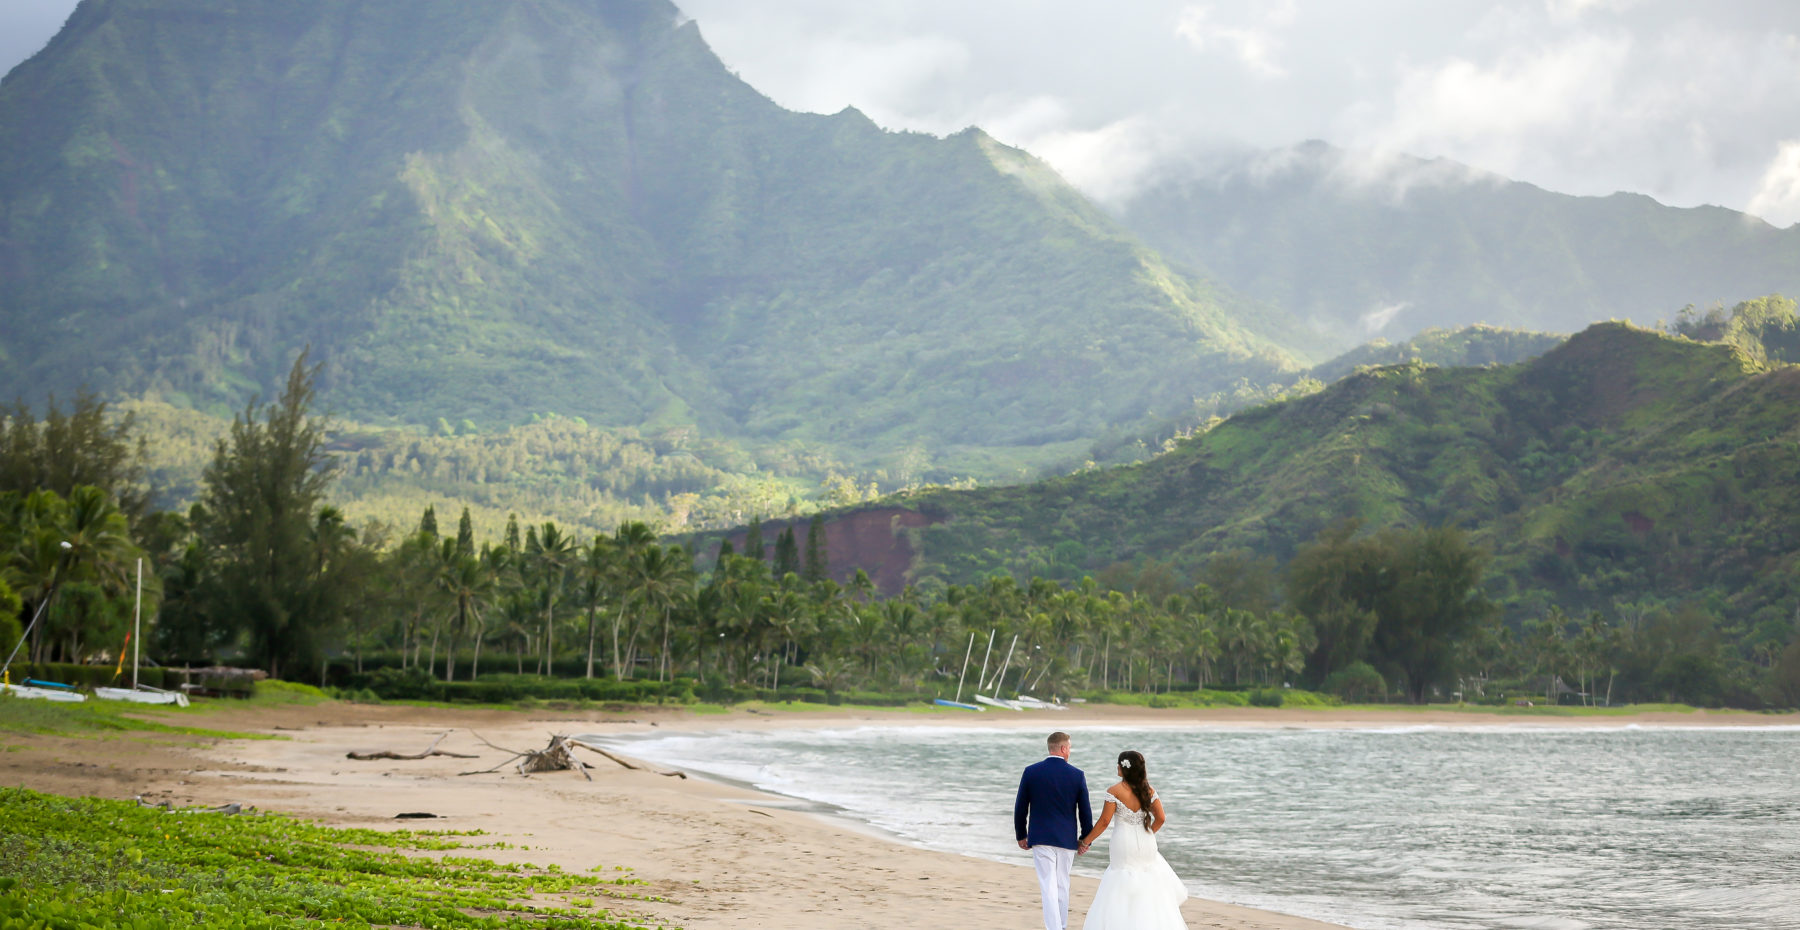 Bride and groom enjoy the beautiful mountain views at Hanalei Bay on Kauai.